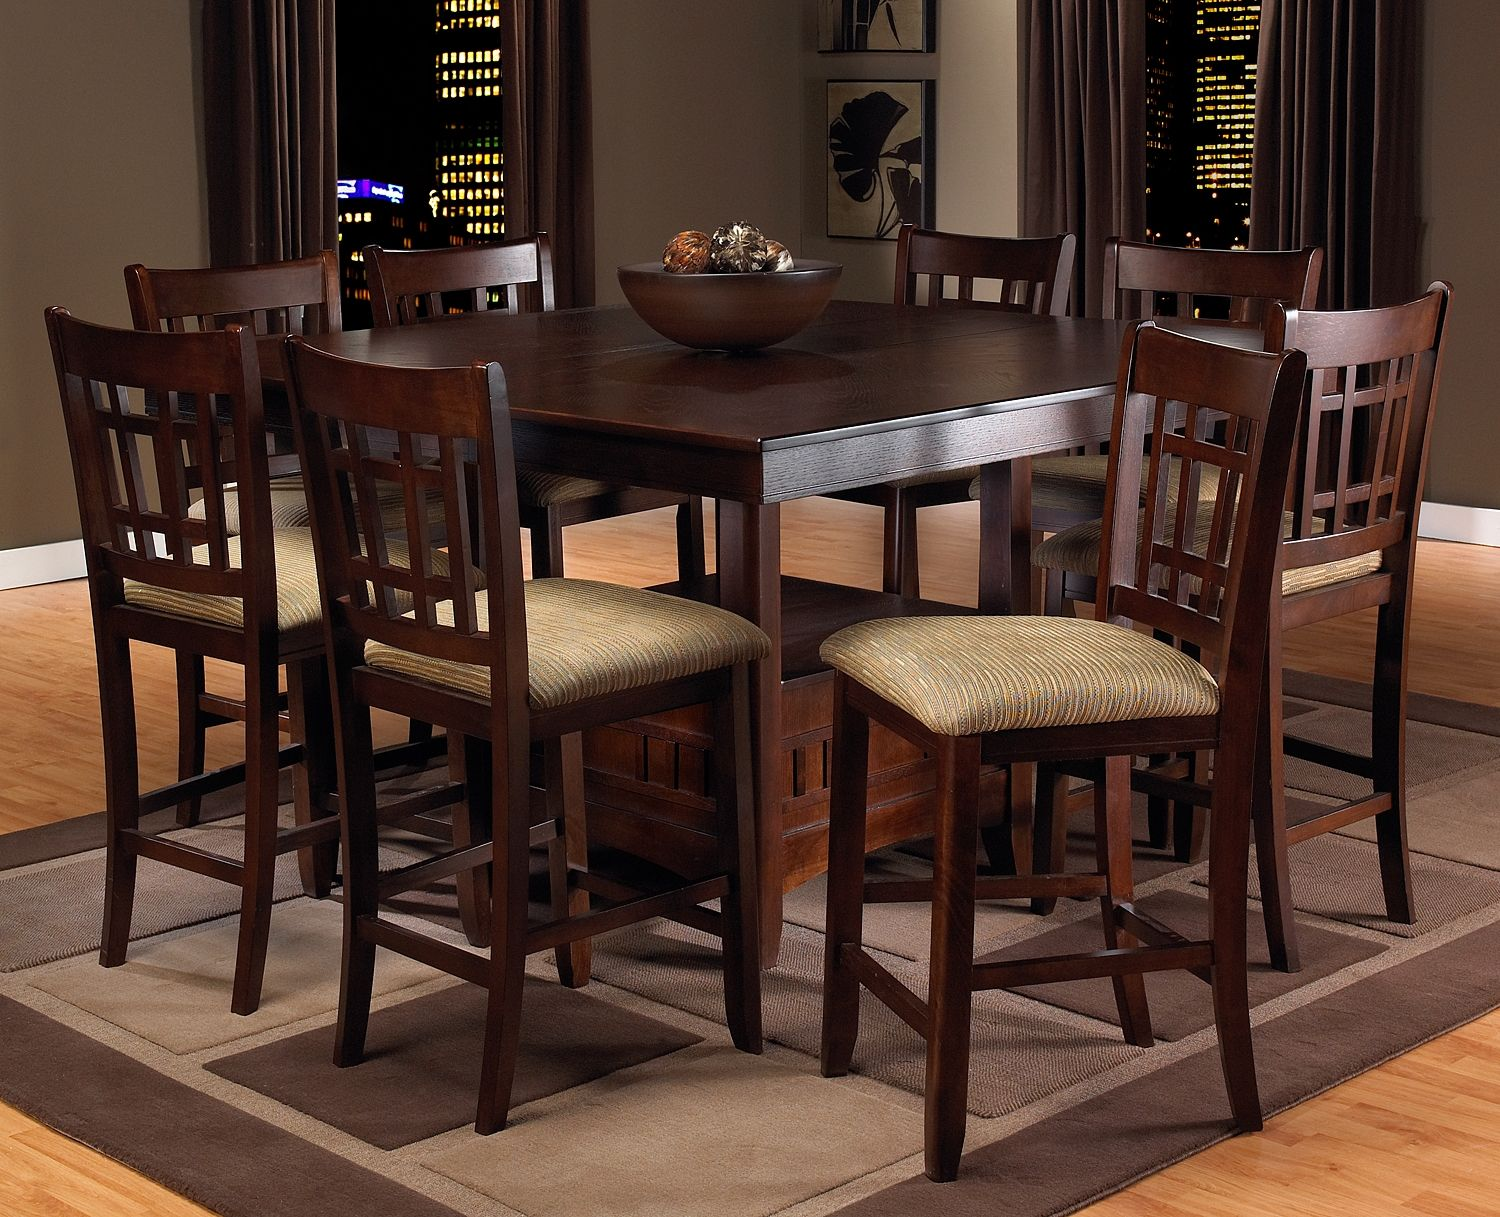 Brighton Casual Dining 9 Pc. Dinette   Leonu0027s